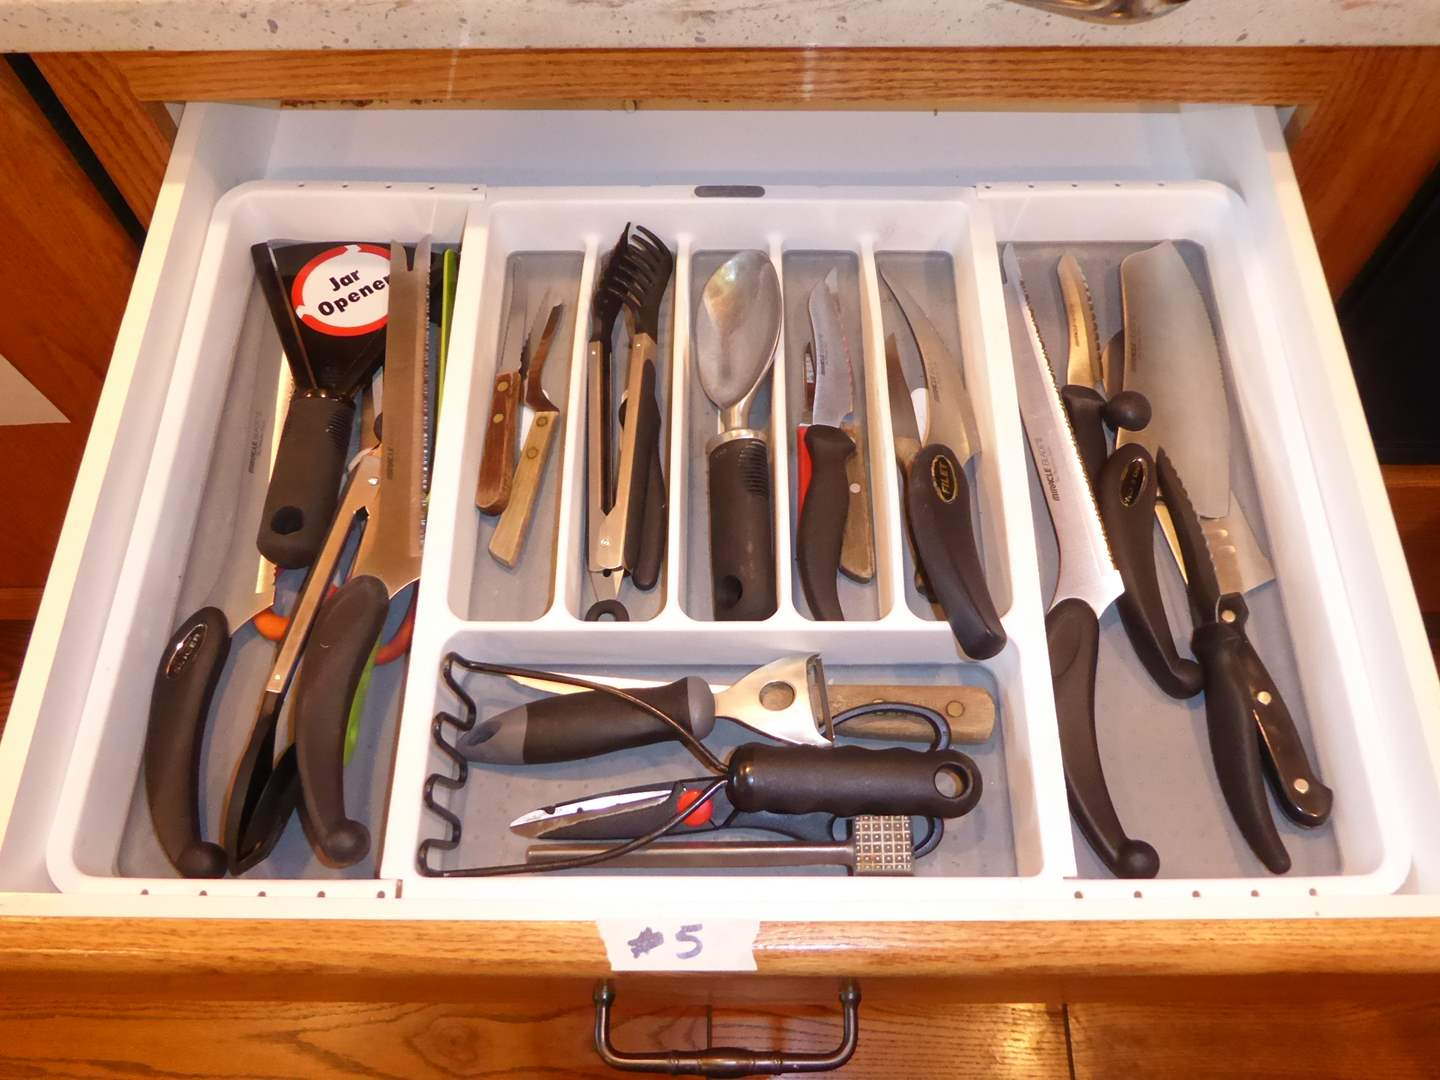 Lot # 5 - Kitchen Utensils, Miracle Blade Knives & Other Knives  (main image)